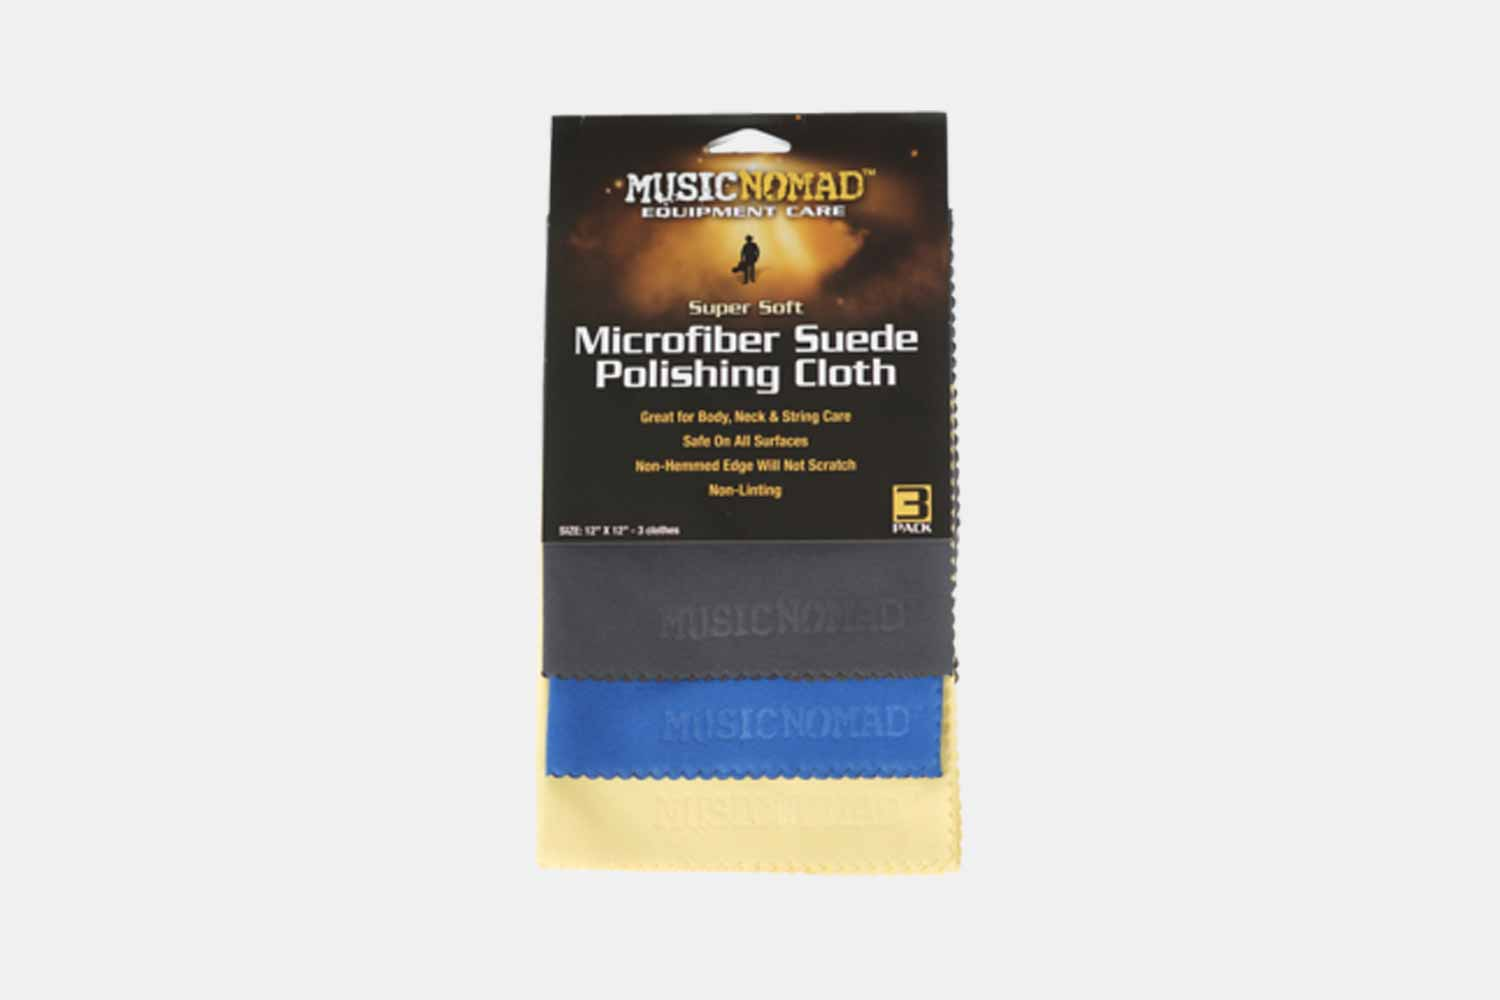 Music Nomad Microfiber Suede Polishing Cloth Pak - MN203 (5482336583844)